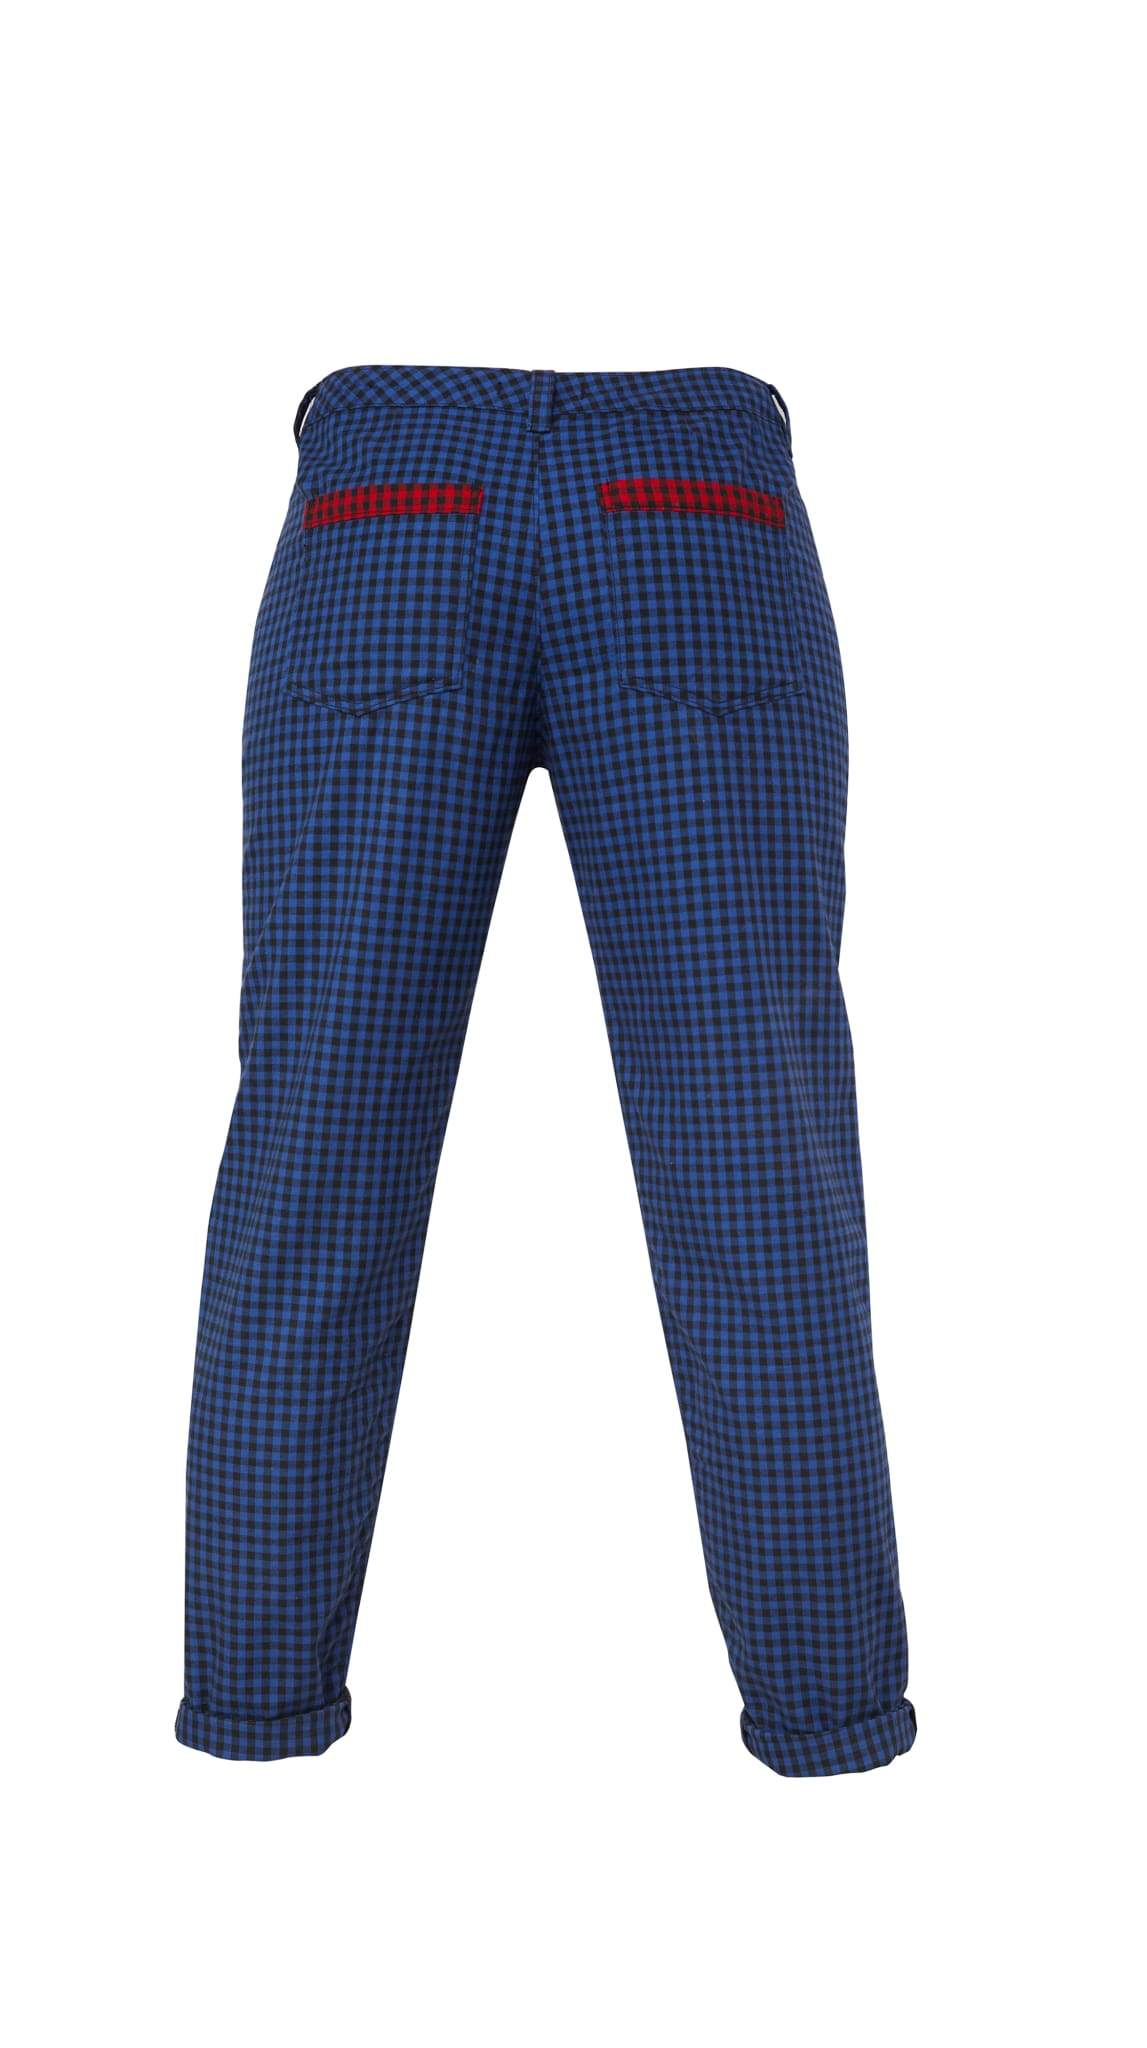 Blue Check Pants by Meghan Hughes Nineteenth Amendment